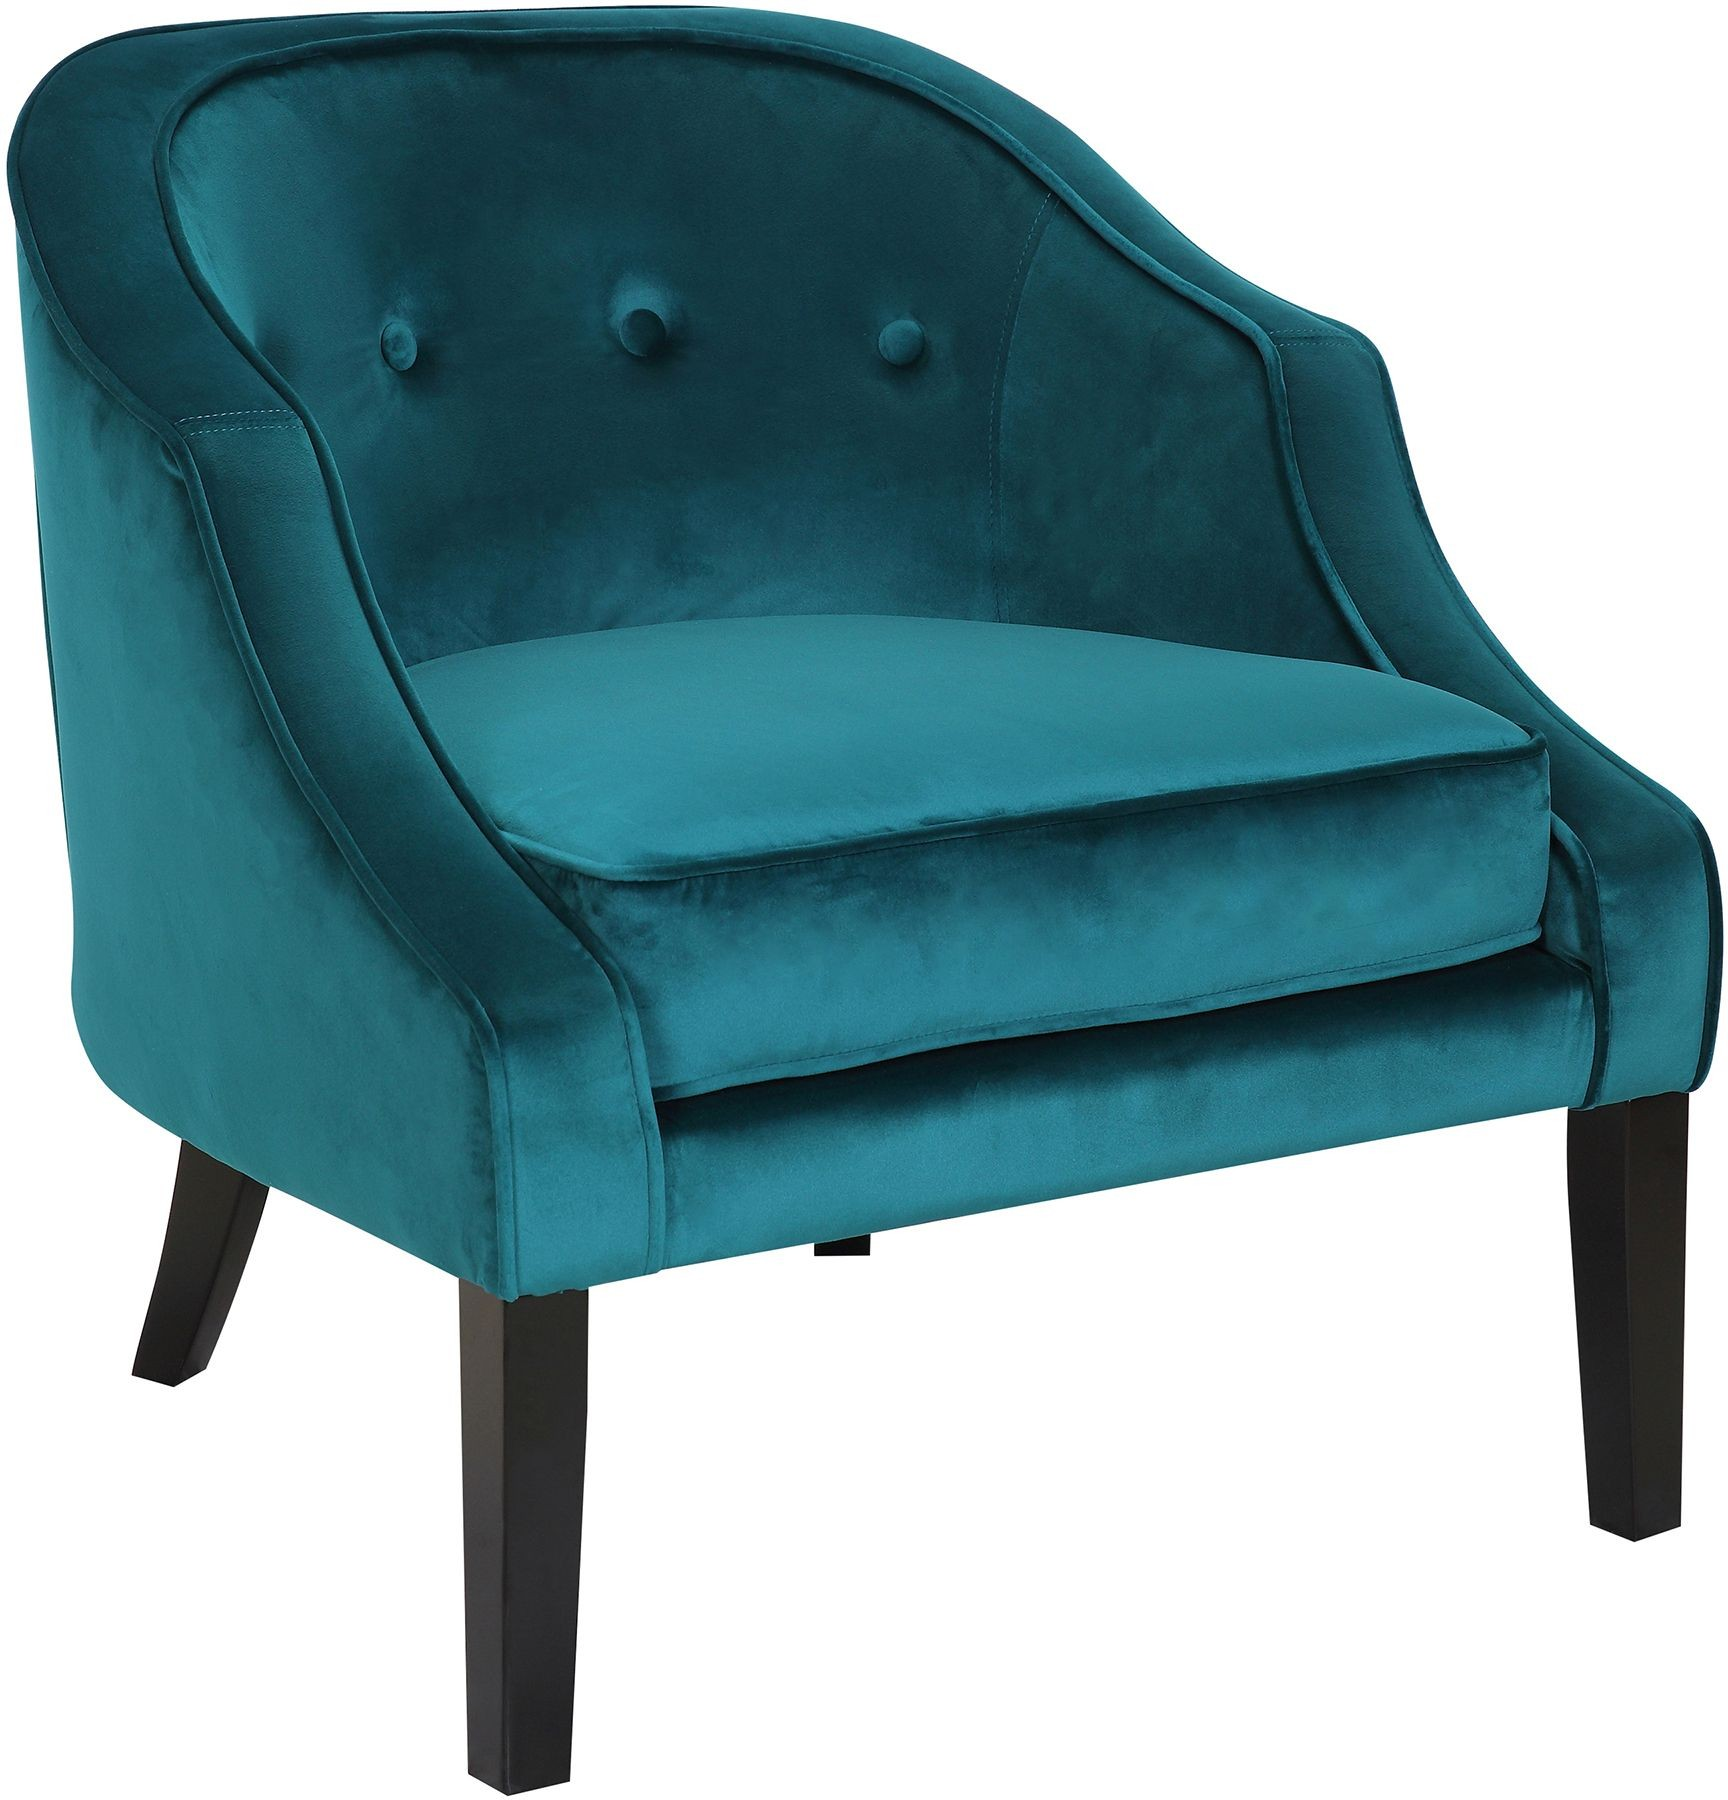 Emerald Green Accent Chair Sofia Emerald Green Accent Chair